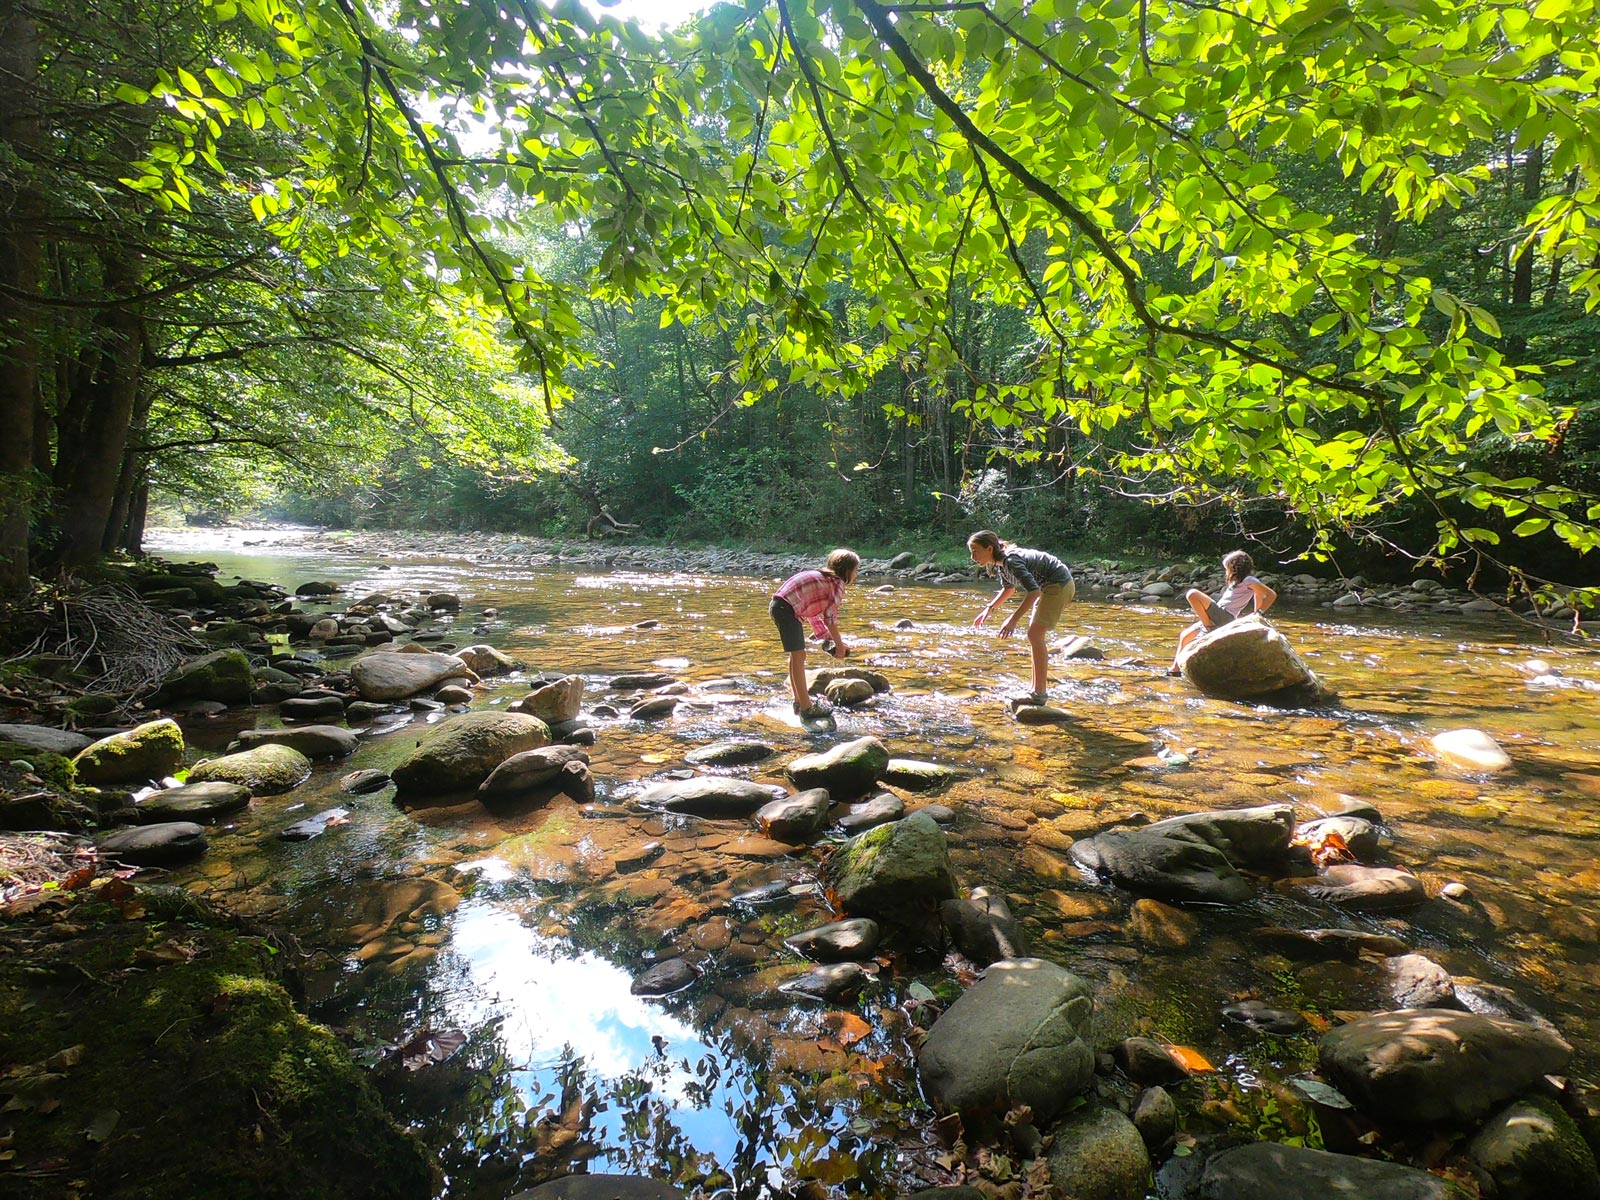 Three girls playing with stones in the Toe River in North Carolina